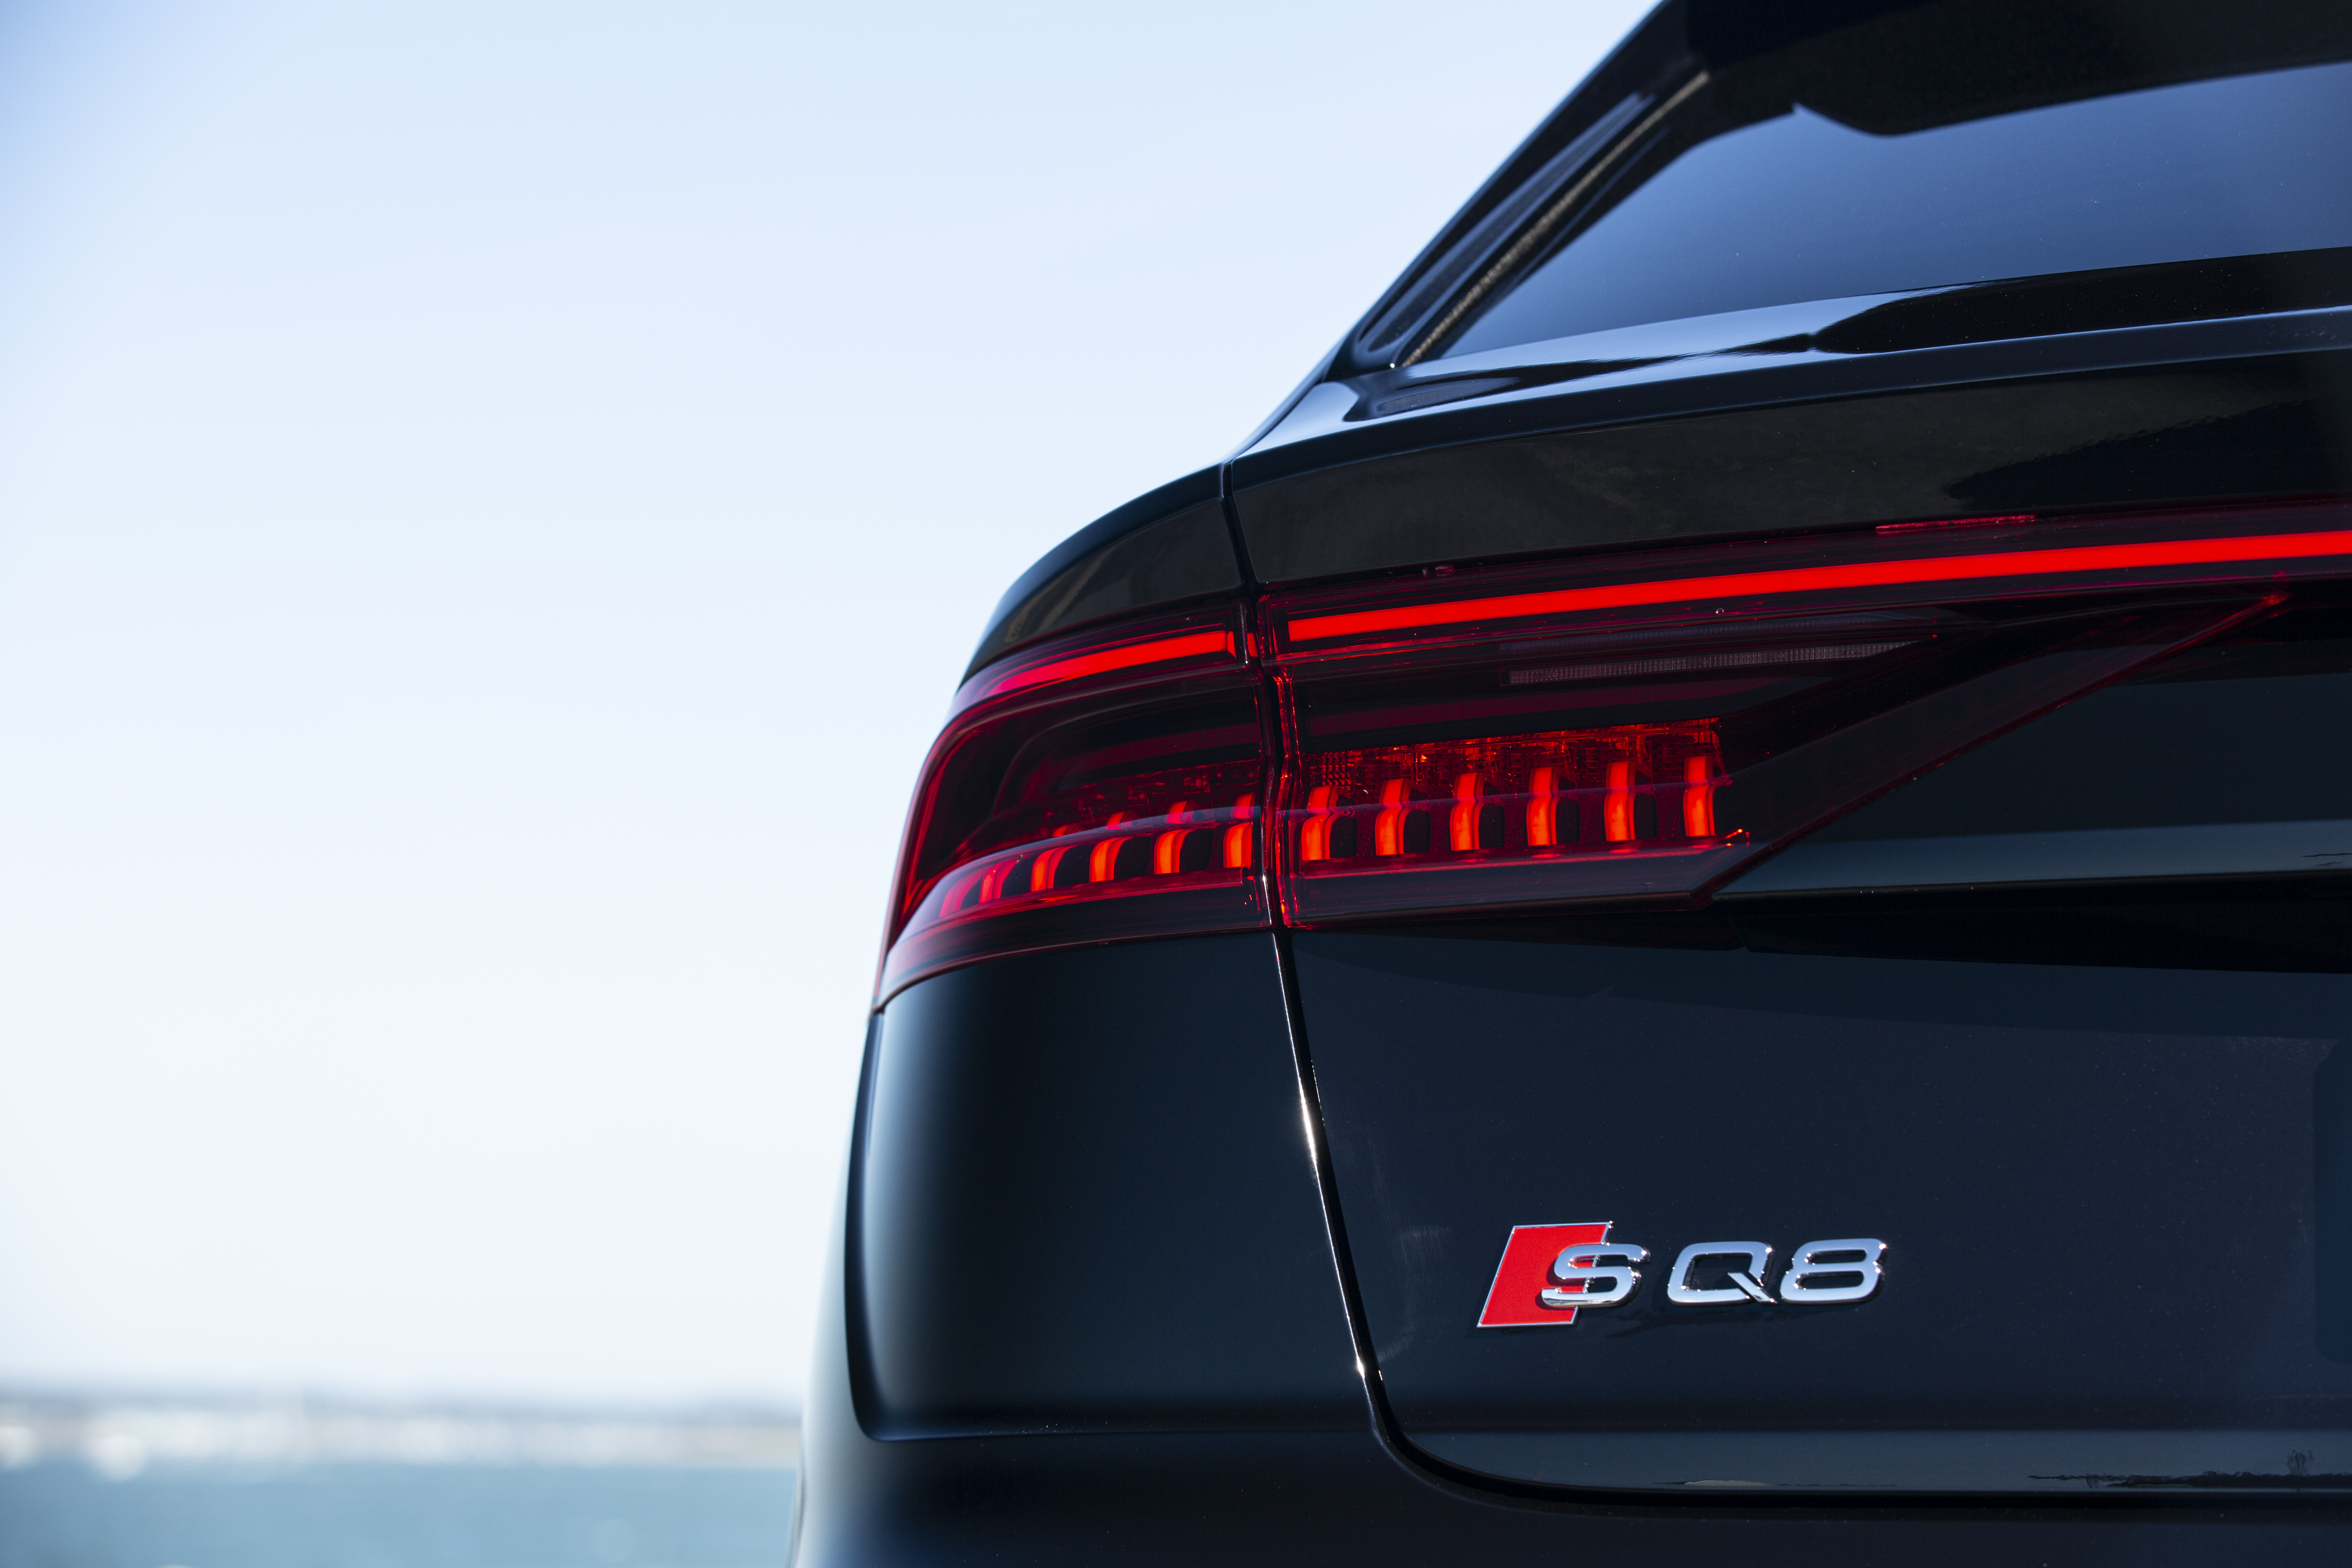 The SQ8 is based on the same platform as the Q7